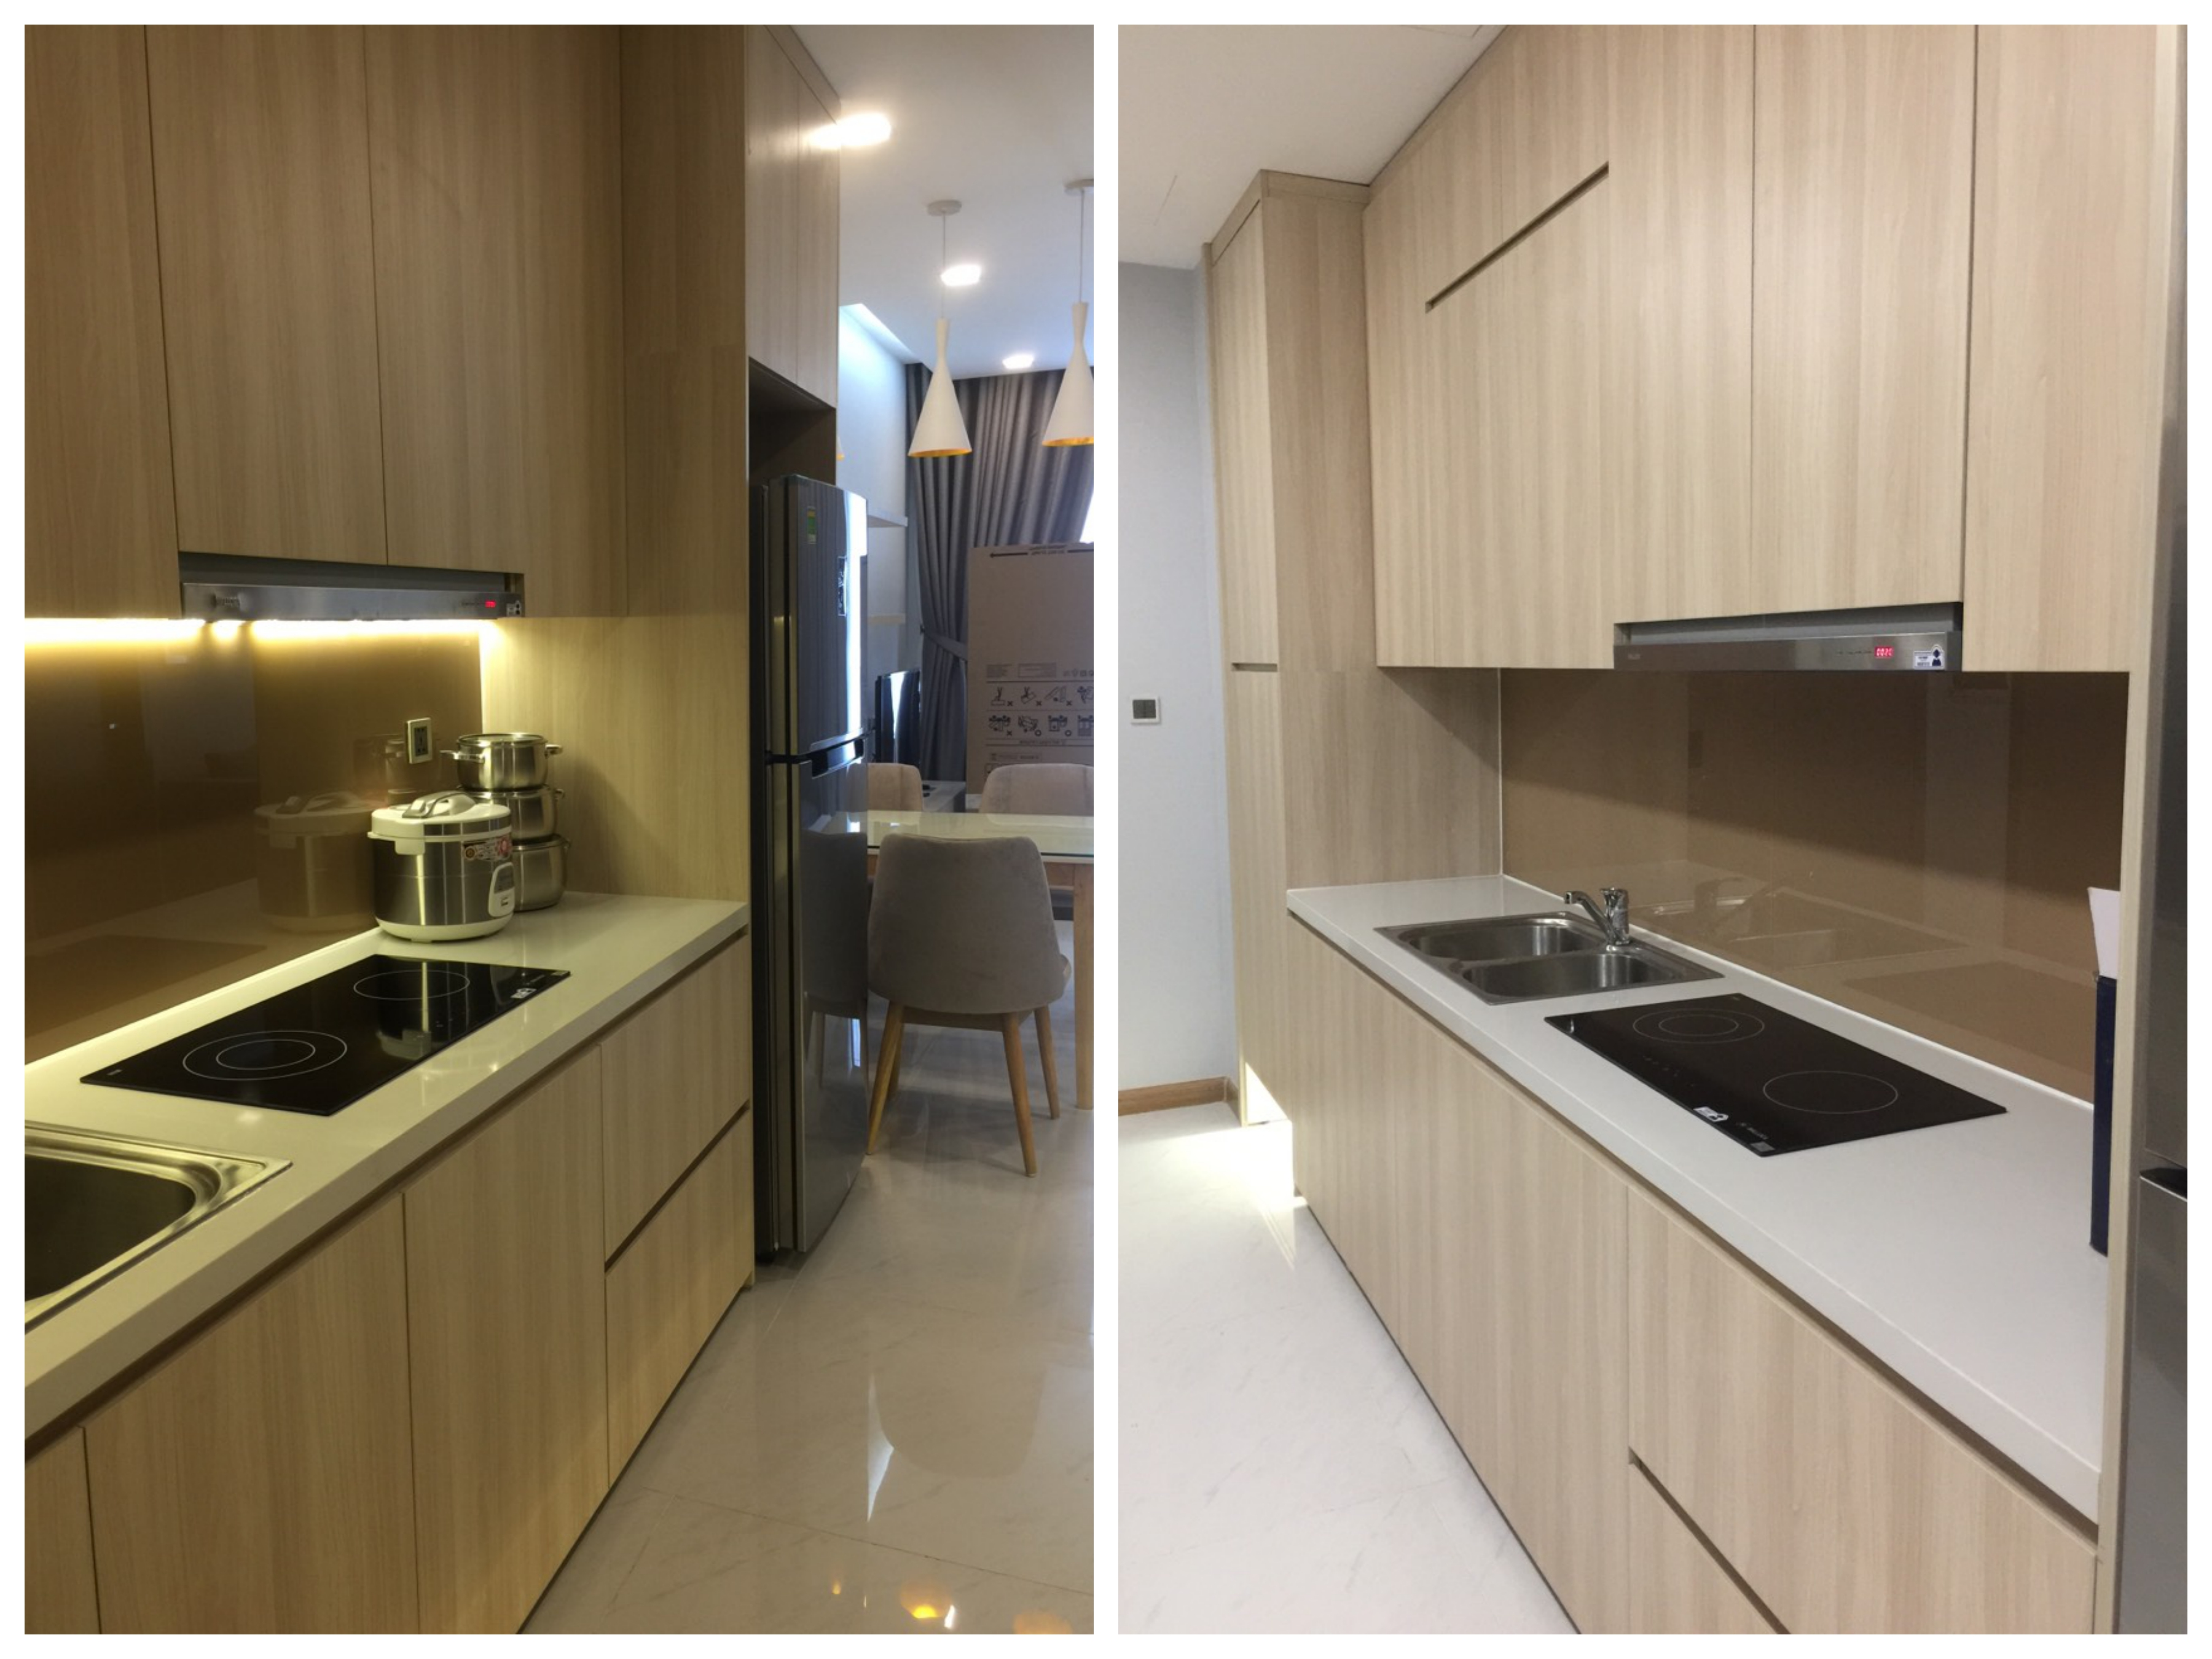 apartment for rent in vinhomes binh thanh district hcmc BT105P2973 (2)